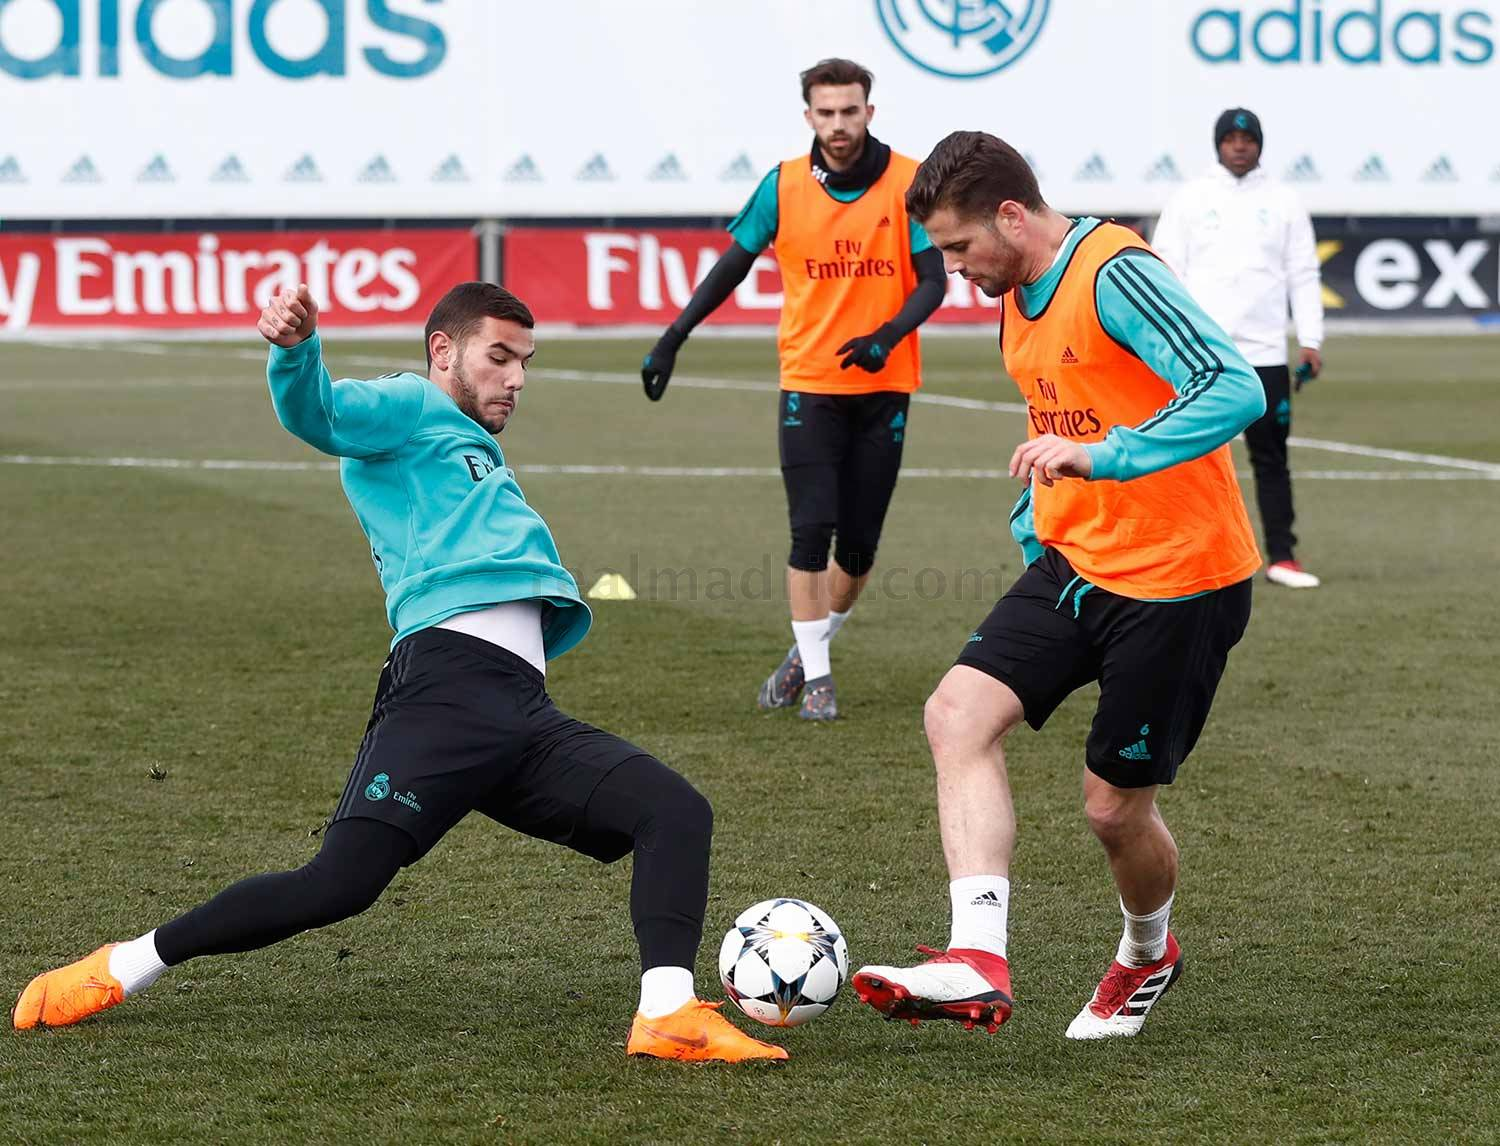 Real Madrid - Entrenamiento del Real Madrid - 11-02-2018